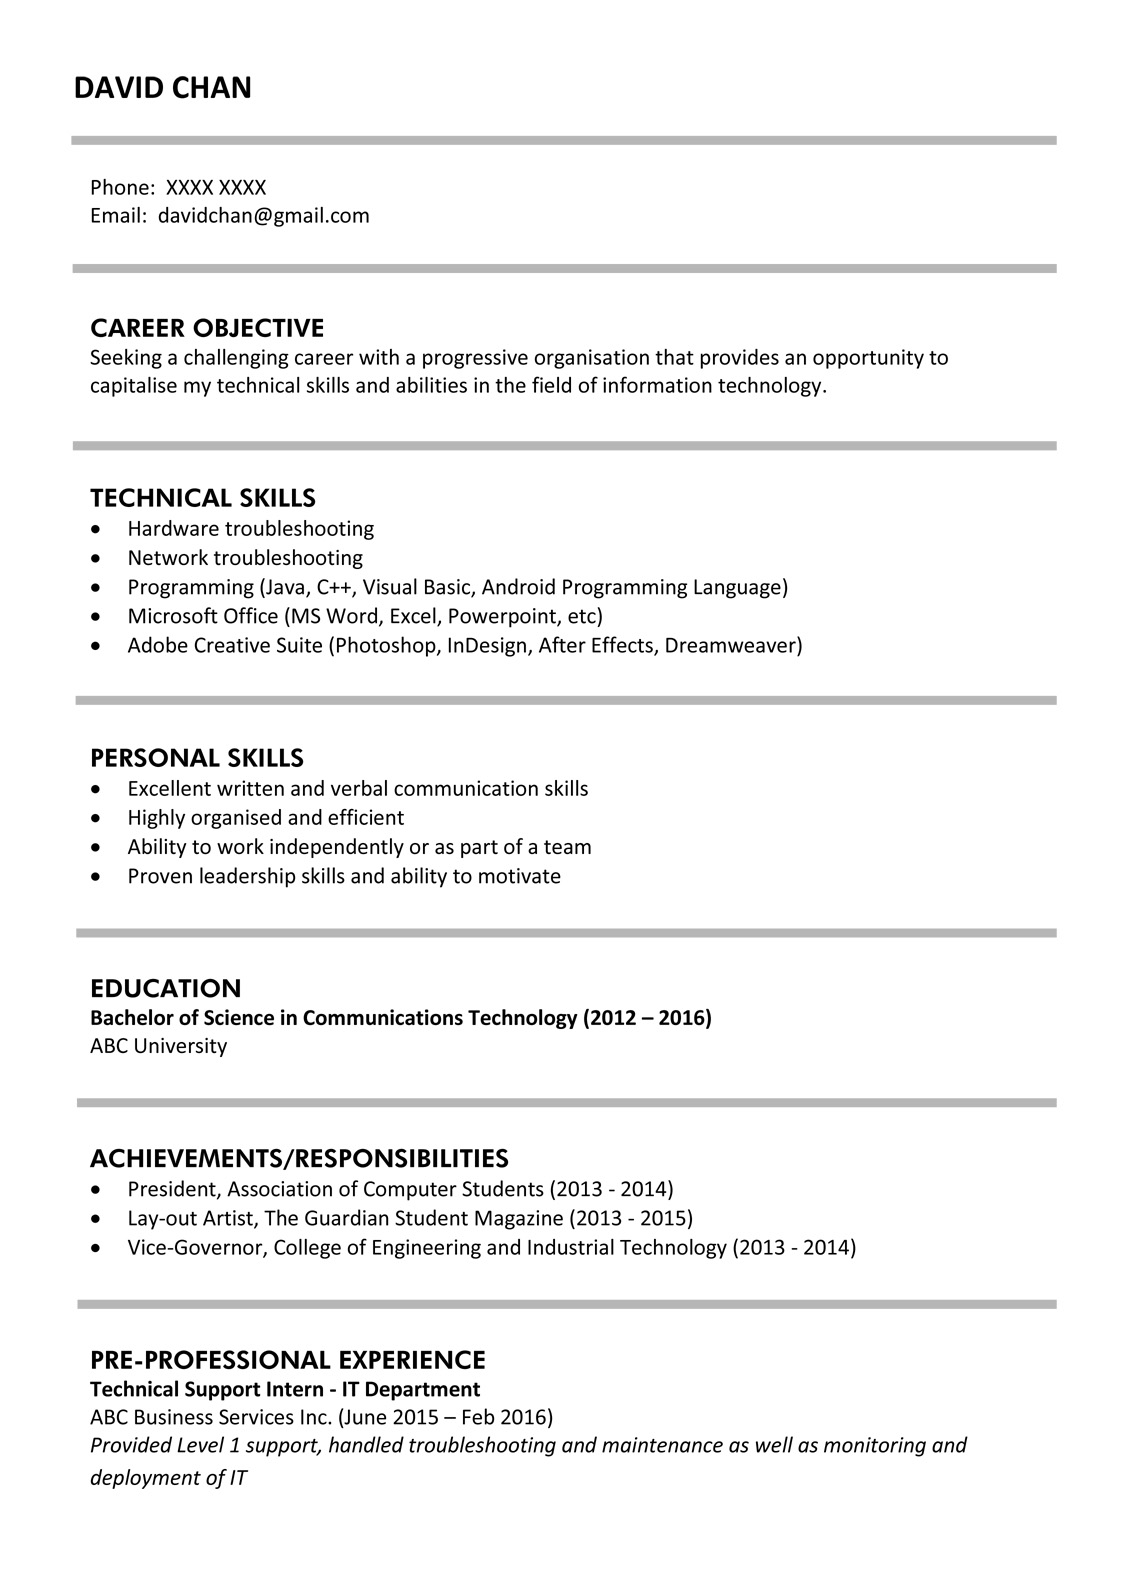 chemist resume example professional experienced sample best for fresh graduate formal Resume Example Of Best Resume For Fresh Graduate